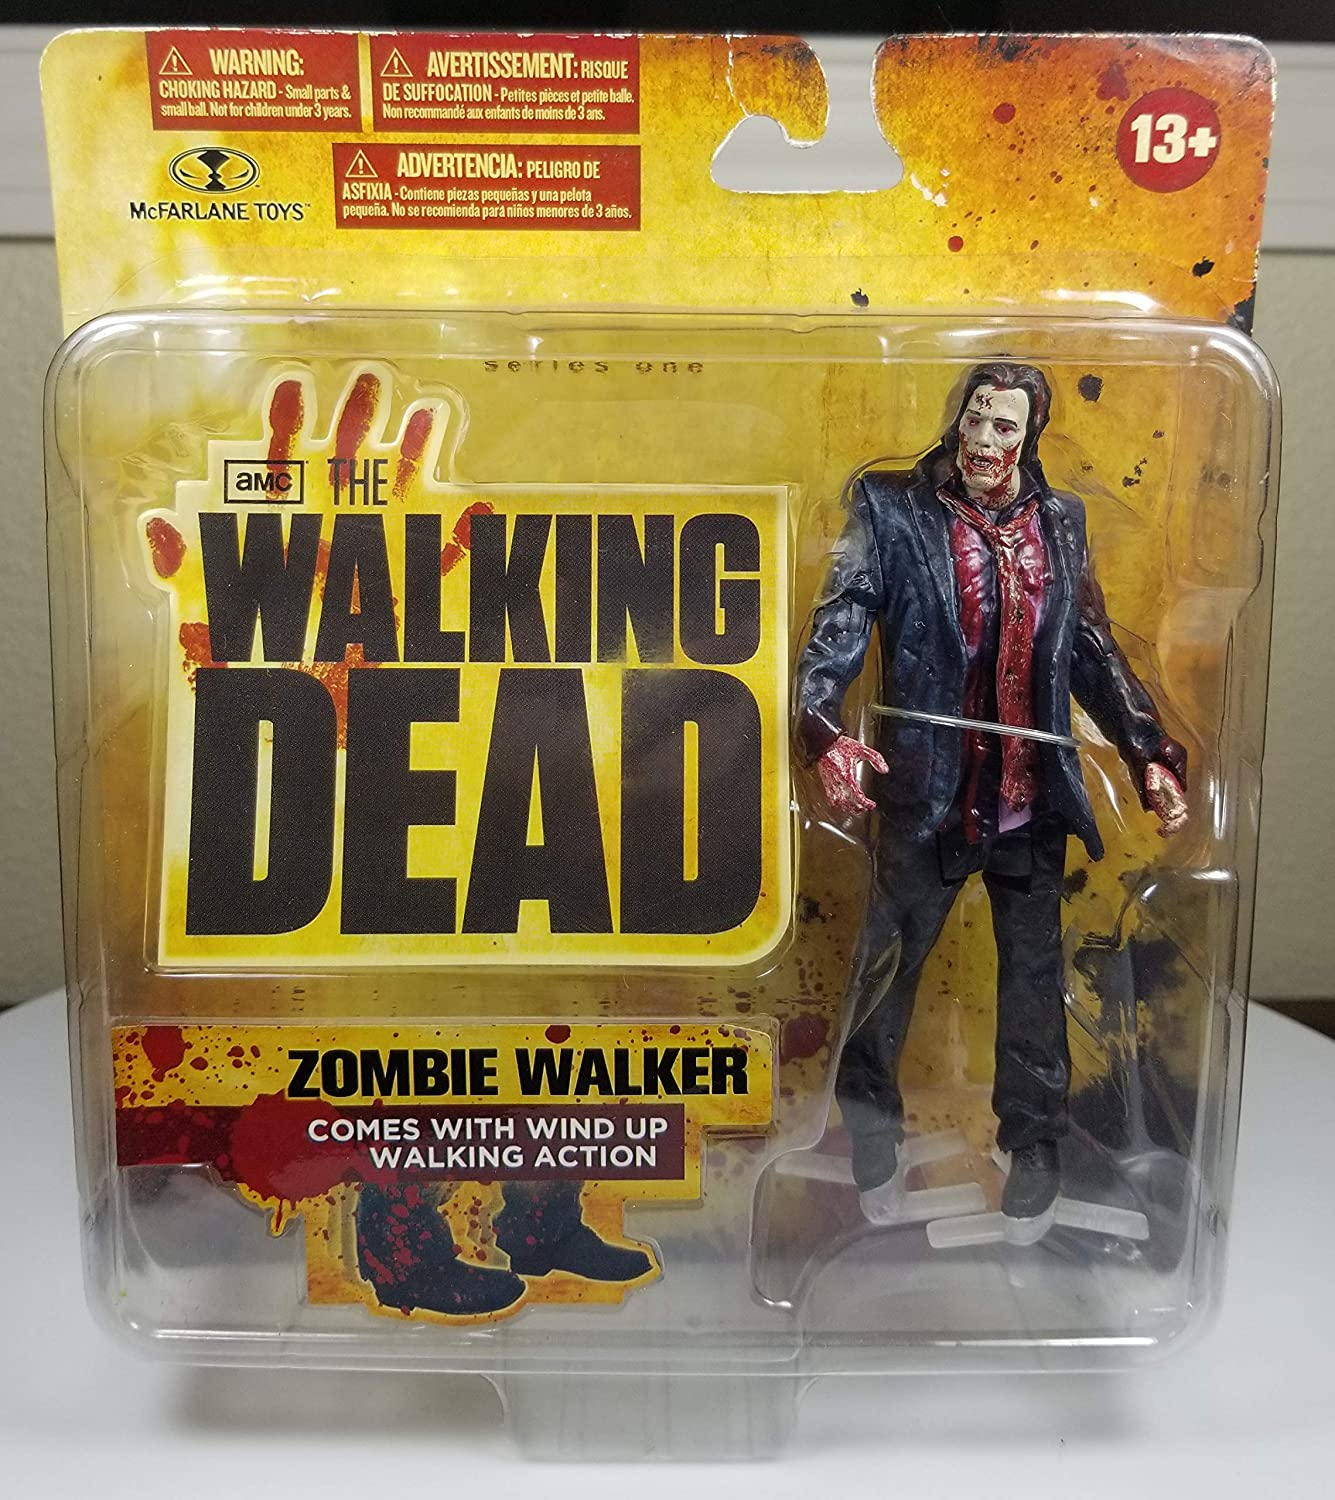 McFarlane Toys The Walking Dead TV Series 1  Zombie Walker Action Figure by McFarlane Toys